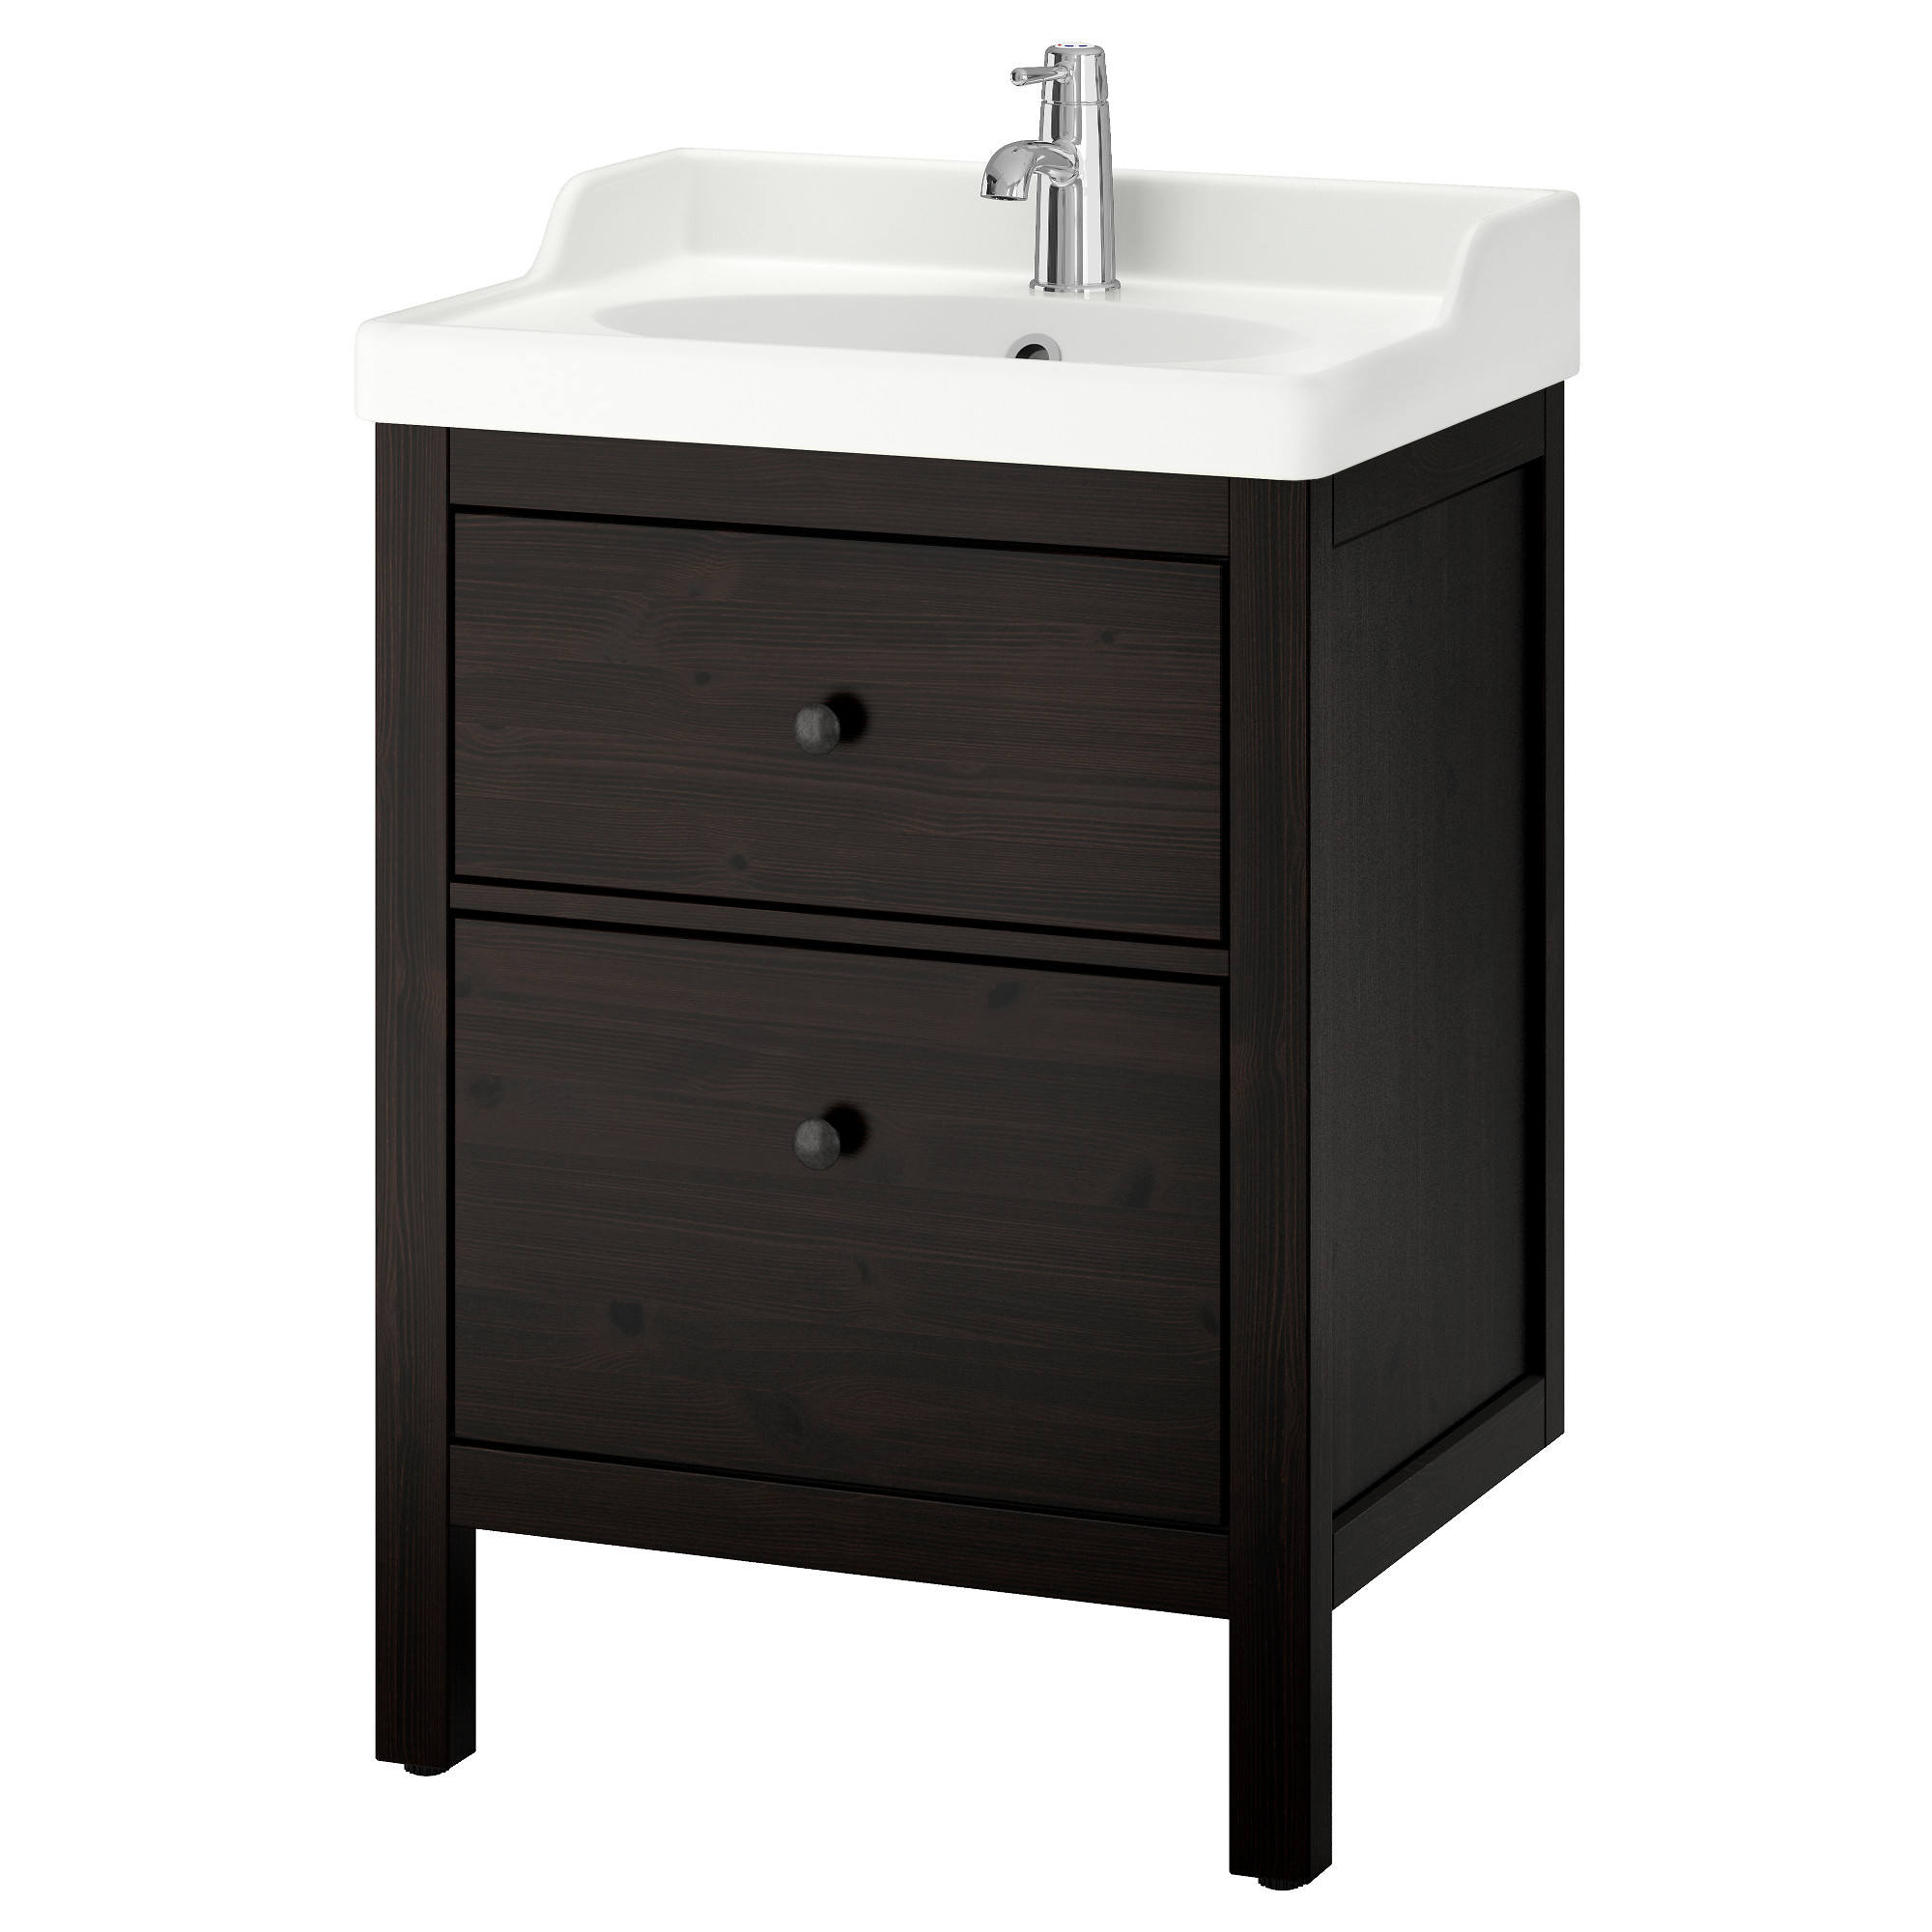 Charming HEMNES / RÄTTVIKEN Sink Cabinet With 2 Drawers   Black Brown Stain   IKEA